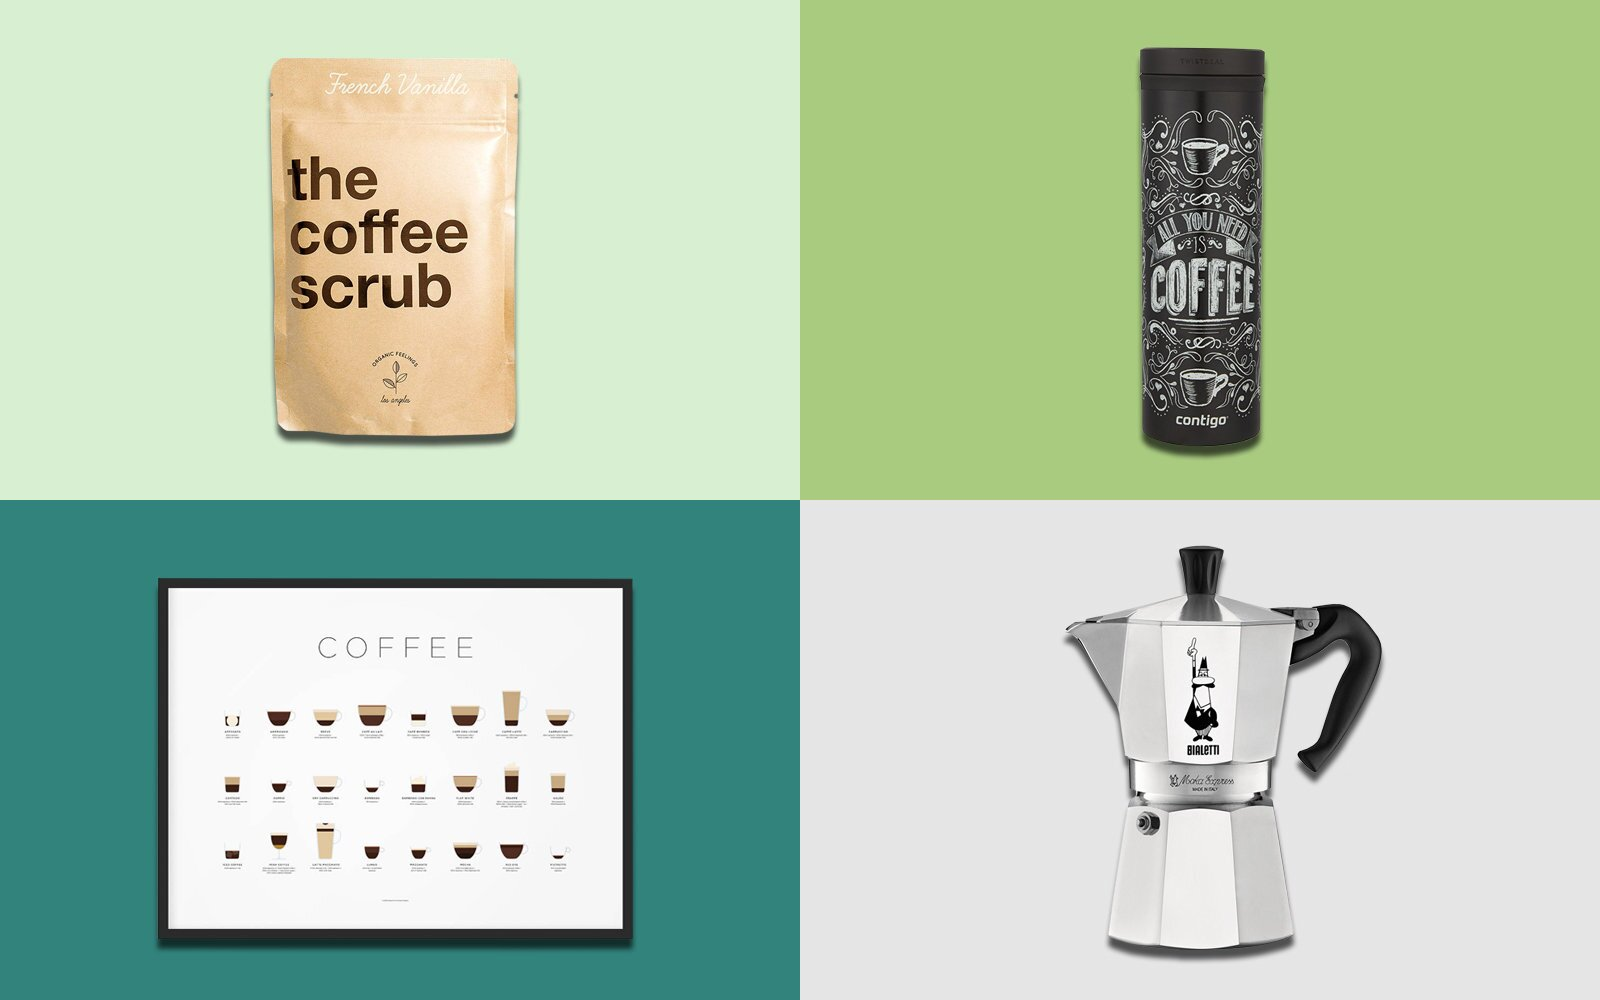 The Best Gifts for Coffee Lovers | Travel + Leisure